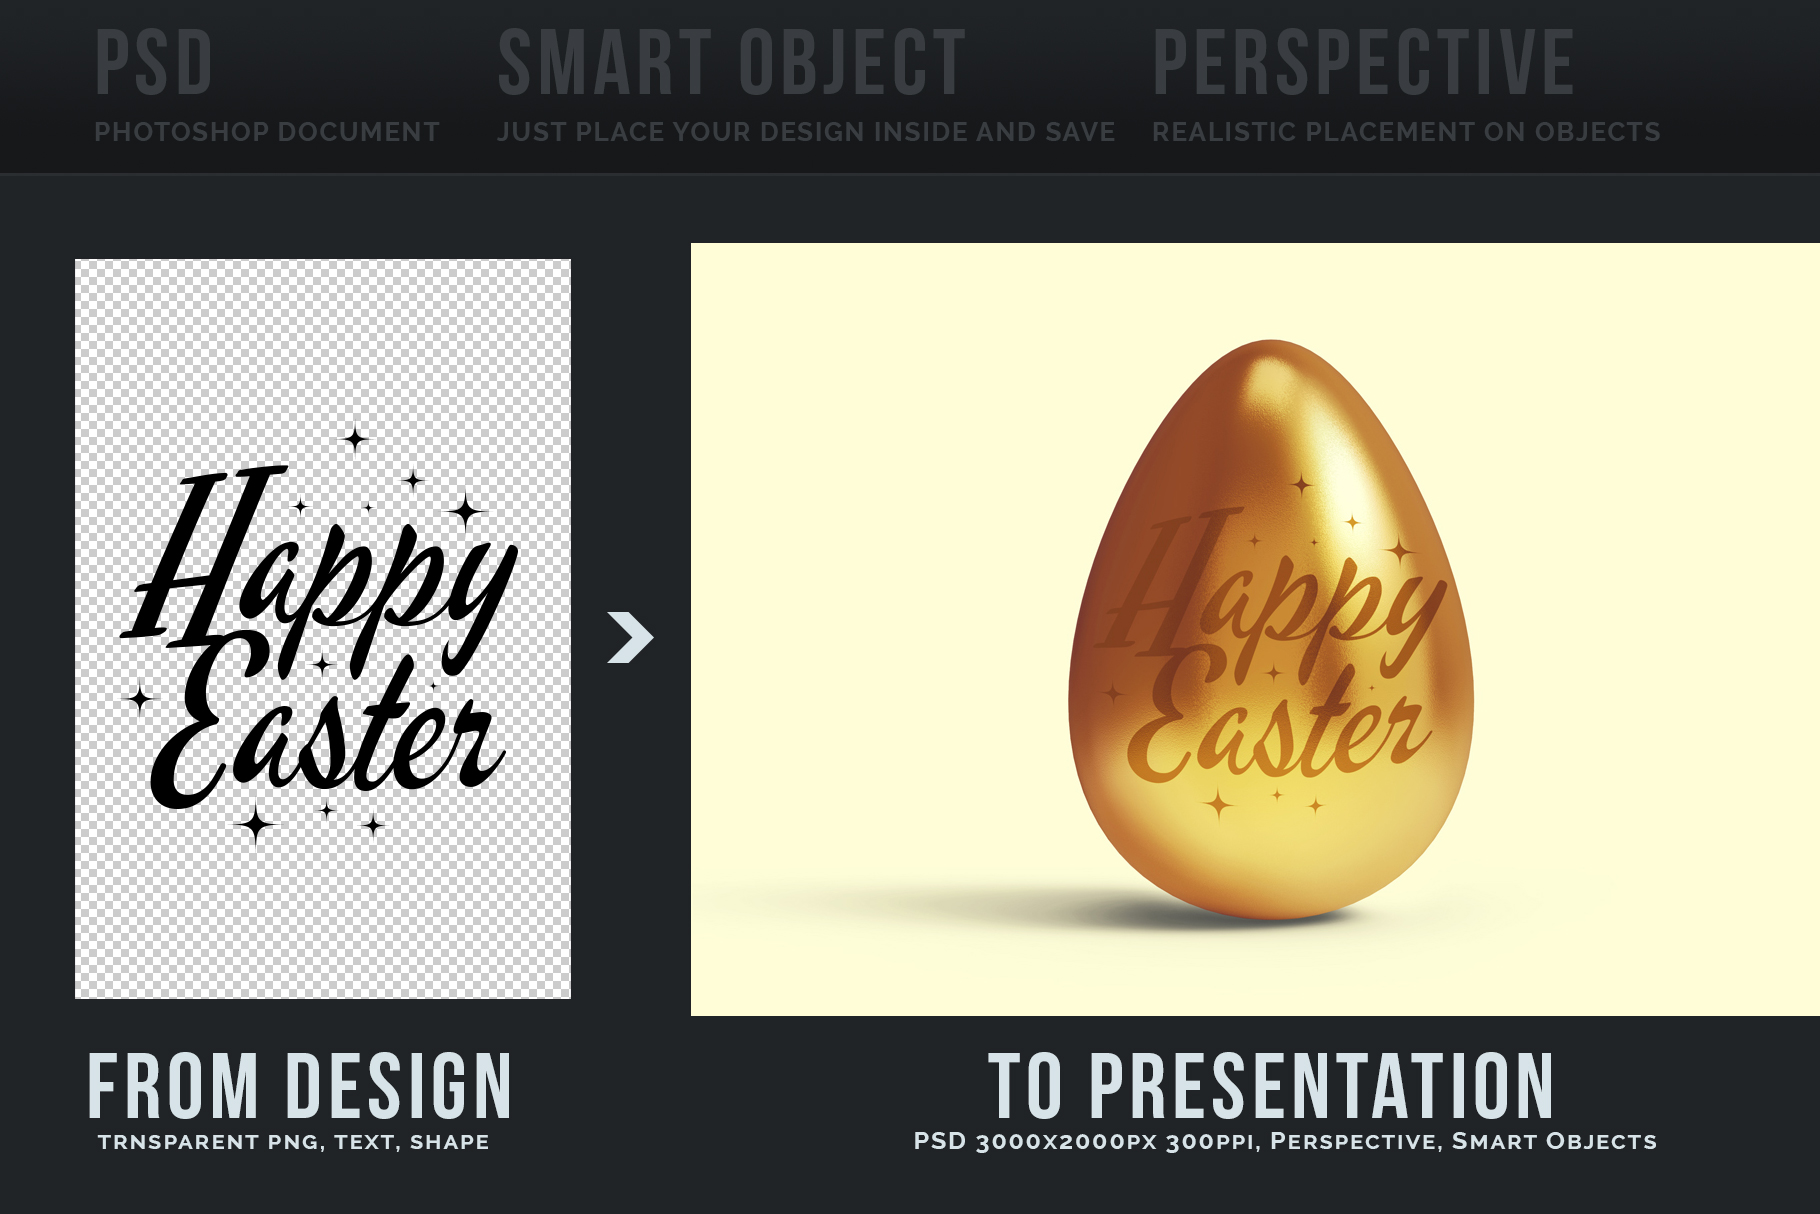 Easter Egg Mockups and Images example image 2